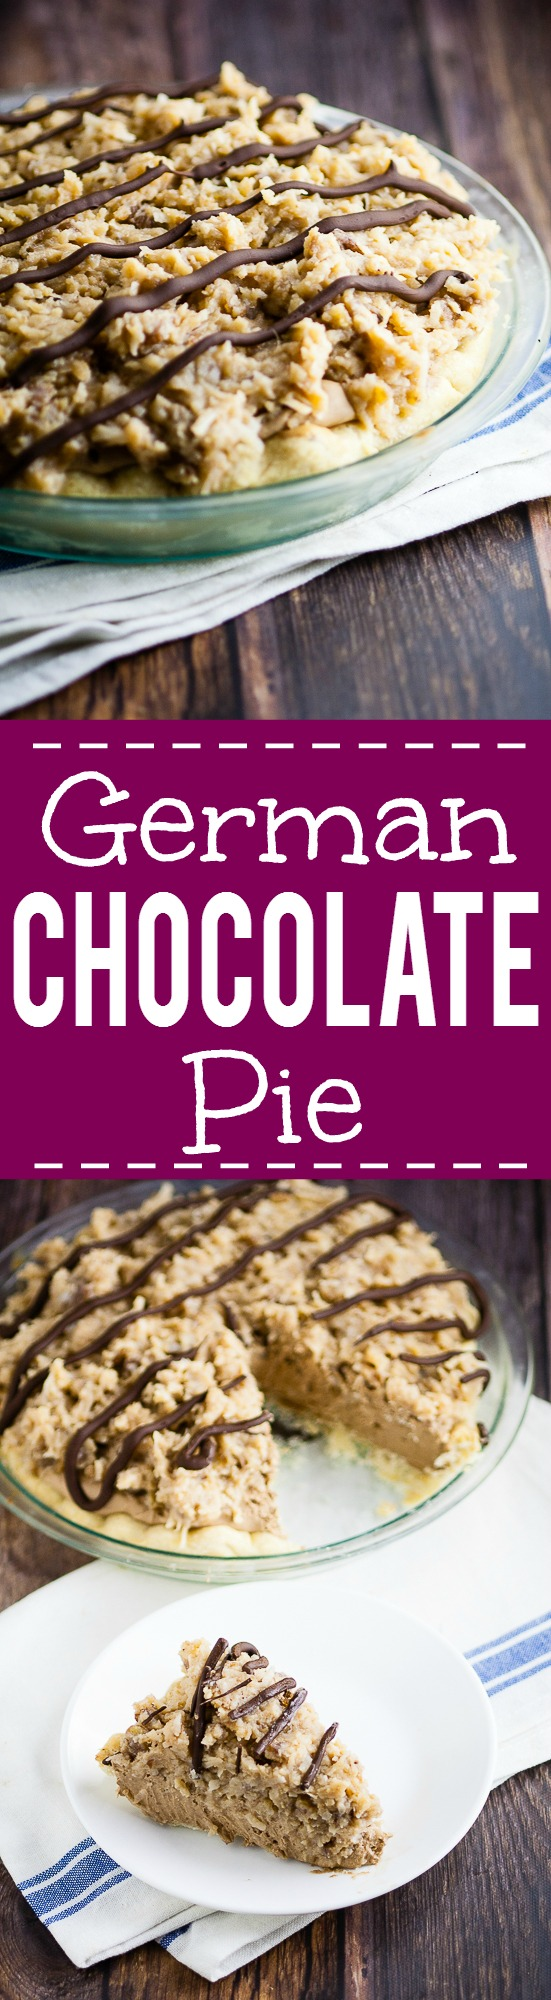 German Chocolate Pie recipe - Silky and creamy, this sweet German Chocolate Pie recipe combines a chocolate cream pie with German sweet chocolate, topped with caramel coconut pecan frosting to make a pie that's to-die-for. Such an easy pie recipe!